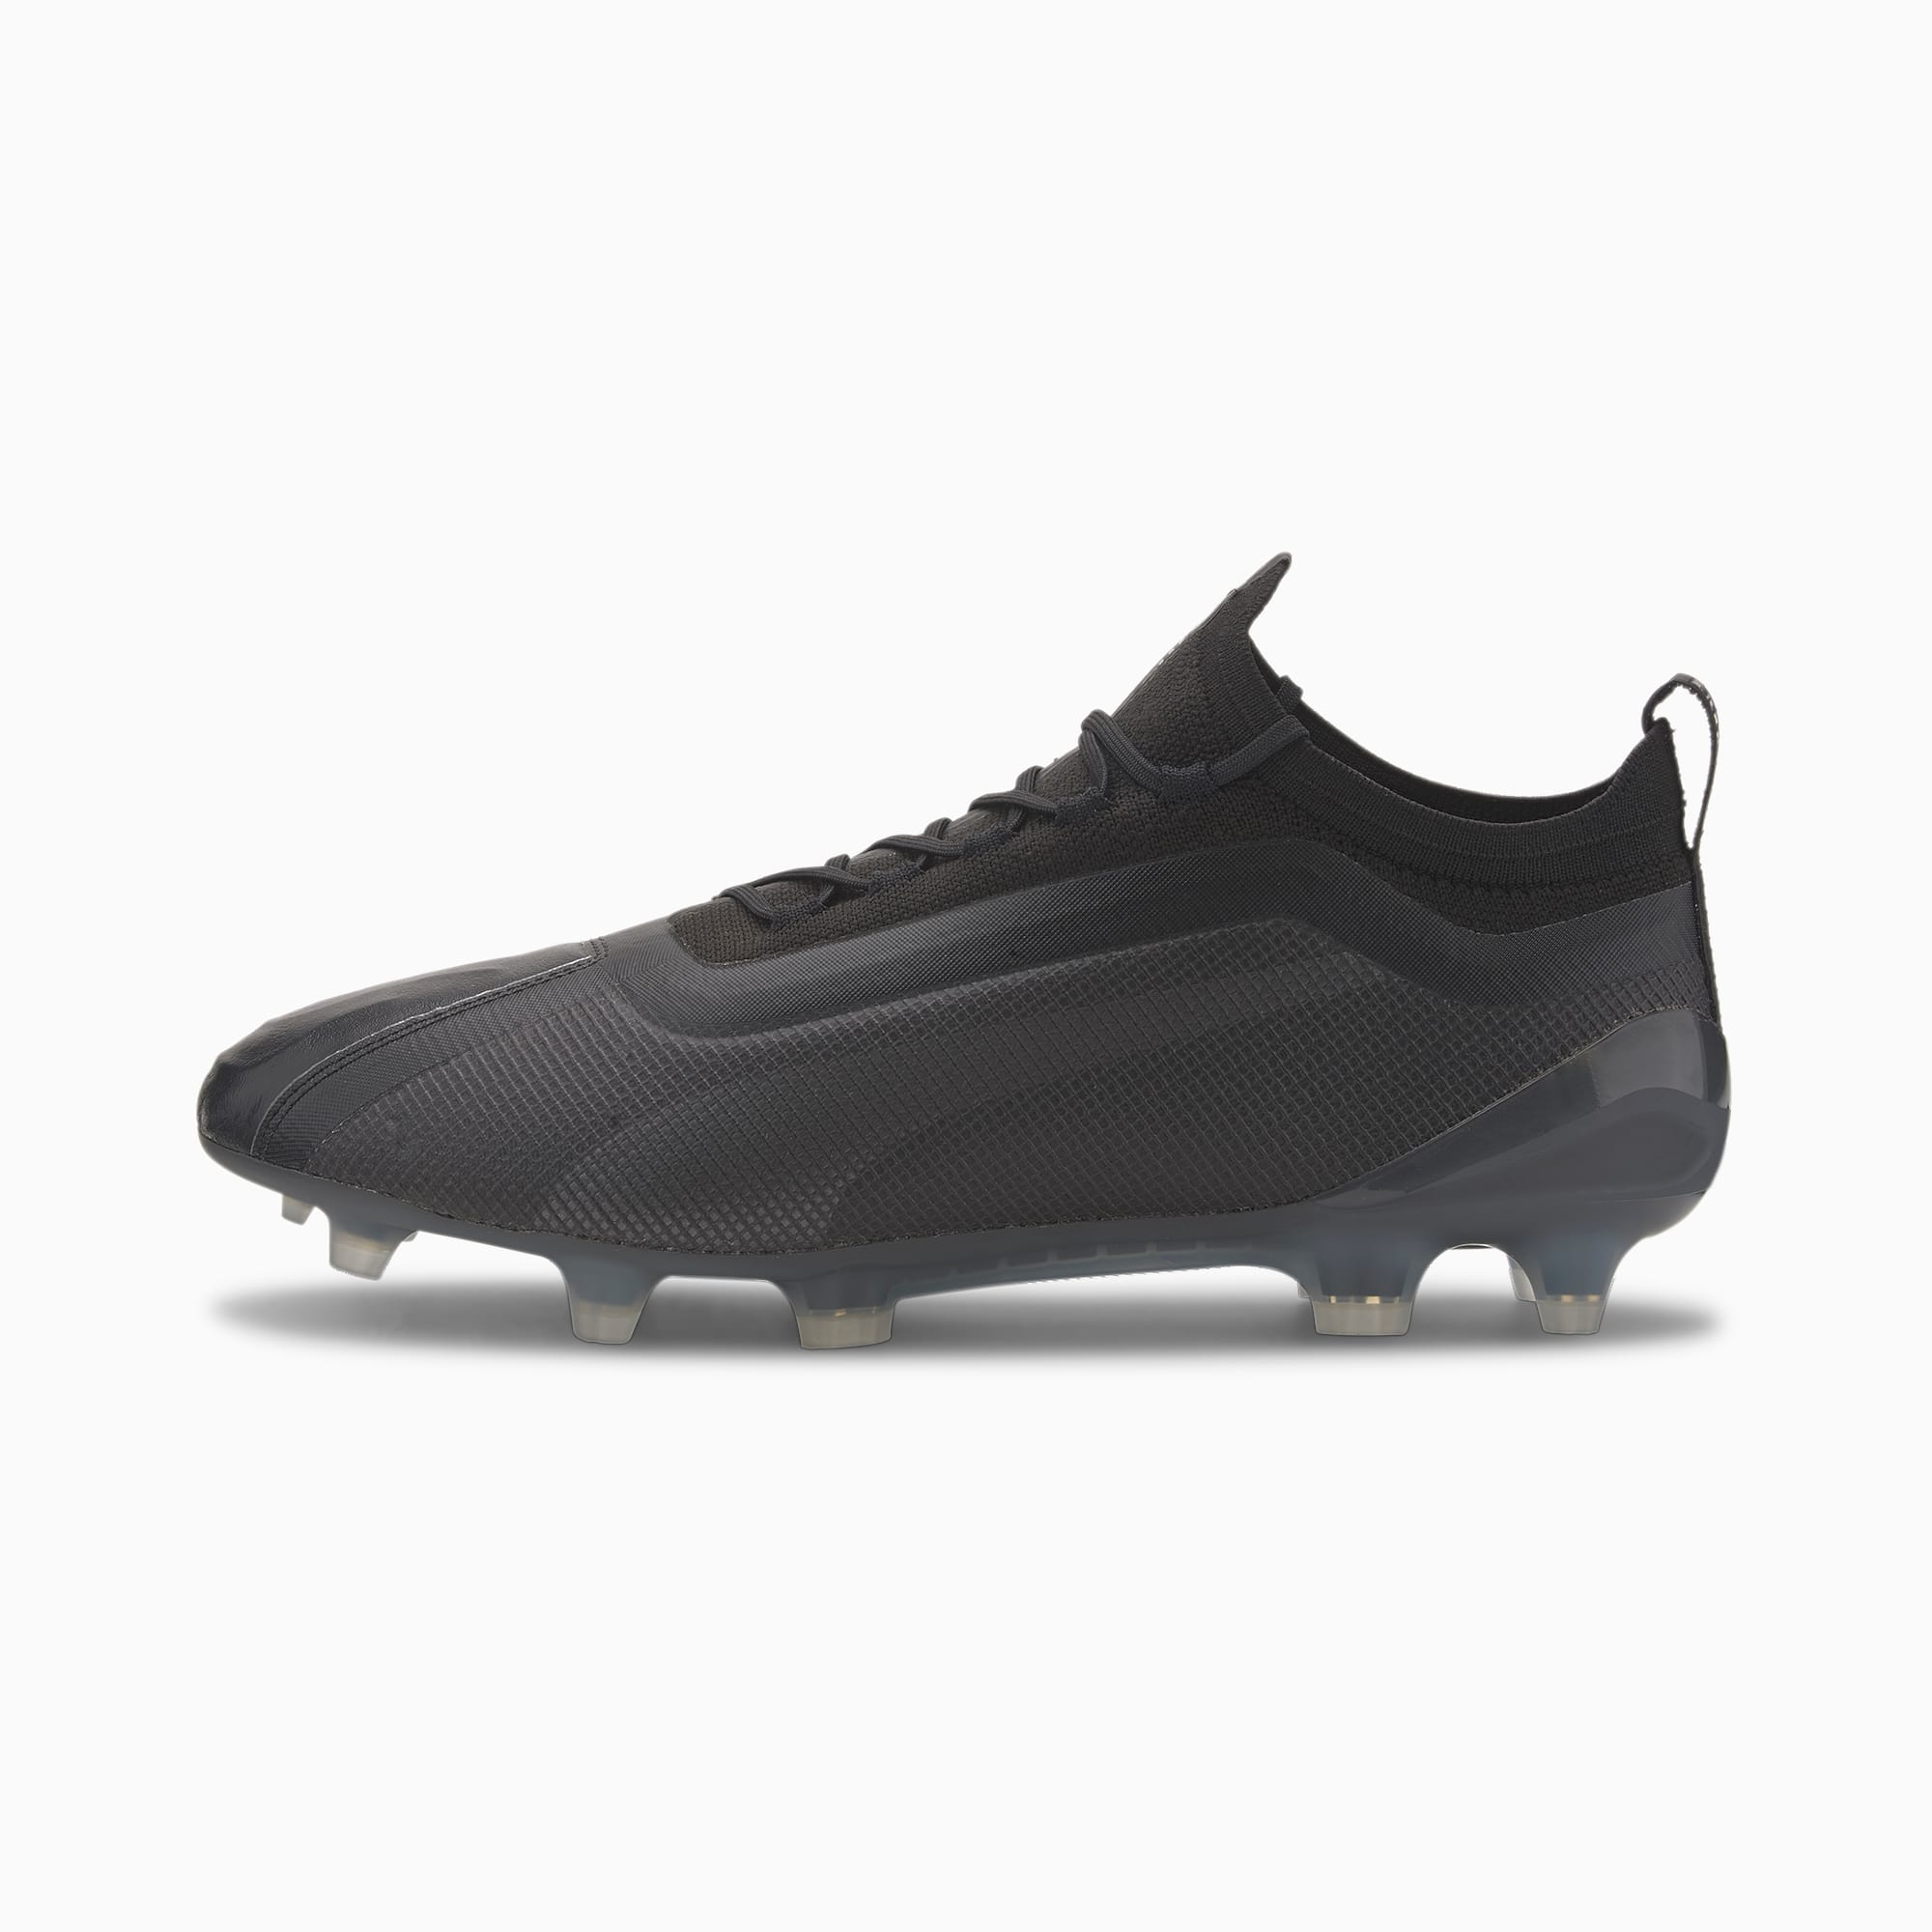 PUMA ONE 20.1 FGAG Men's Soccer Cleats